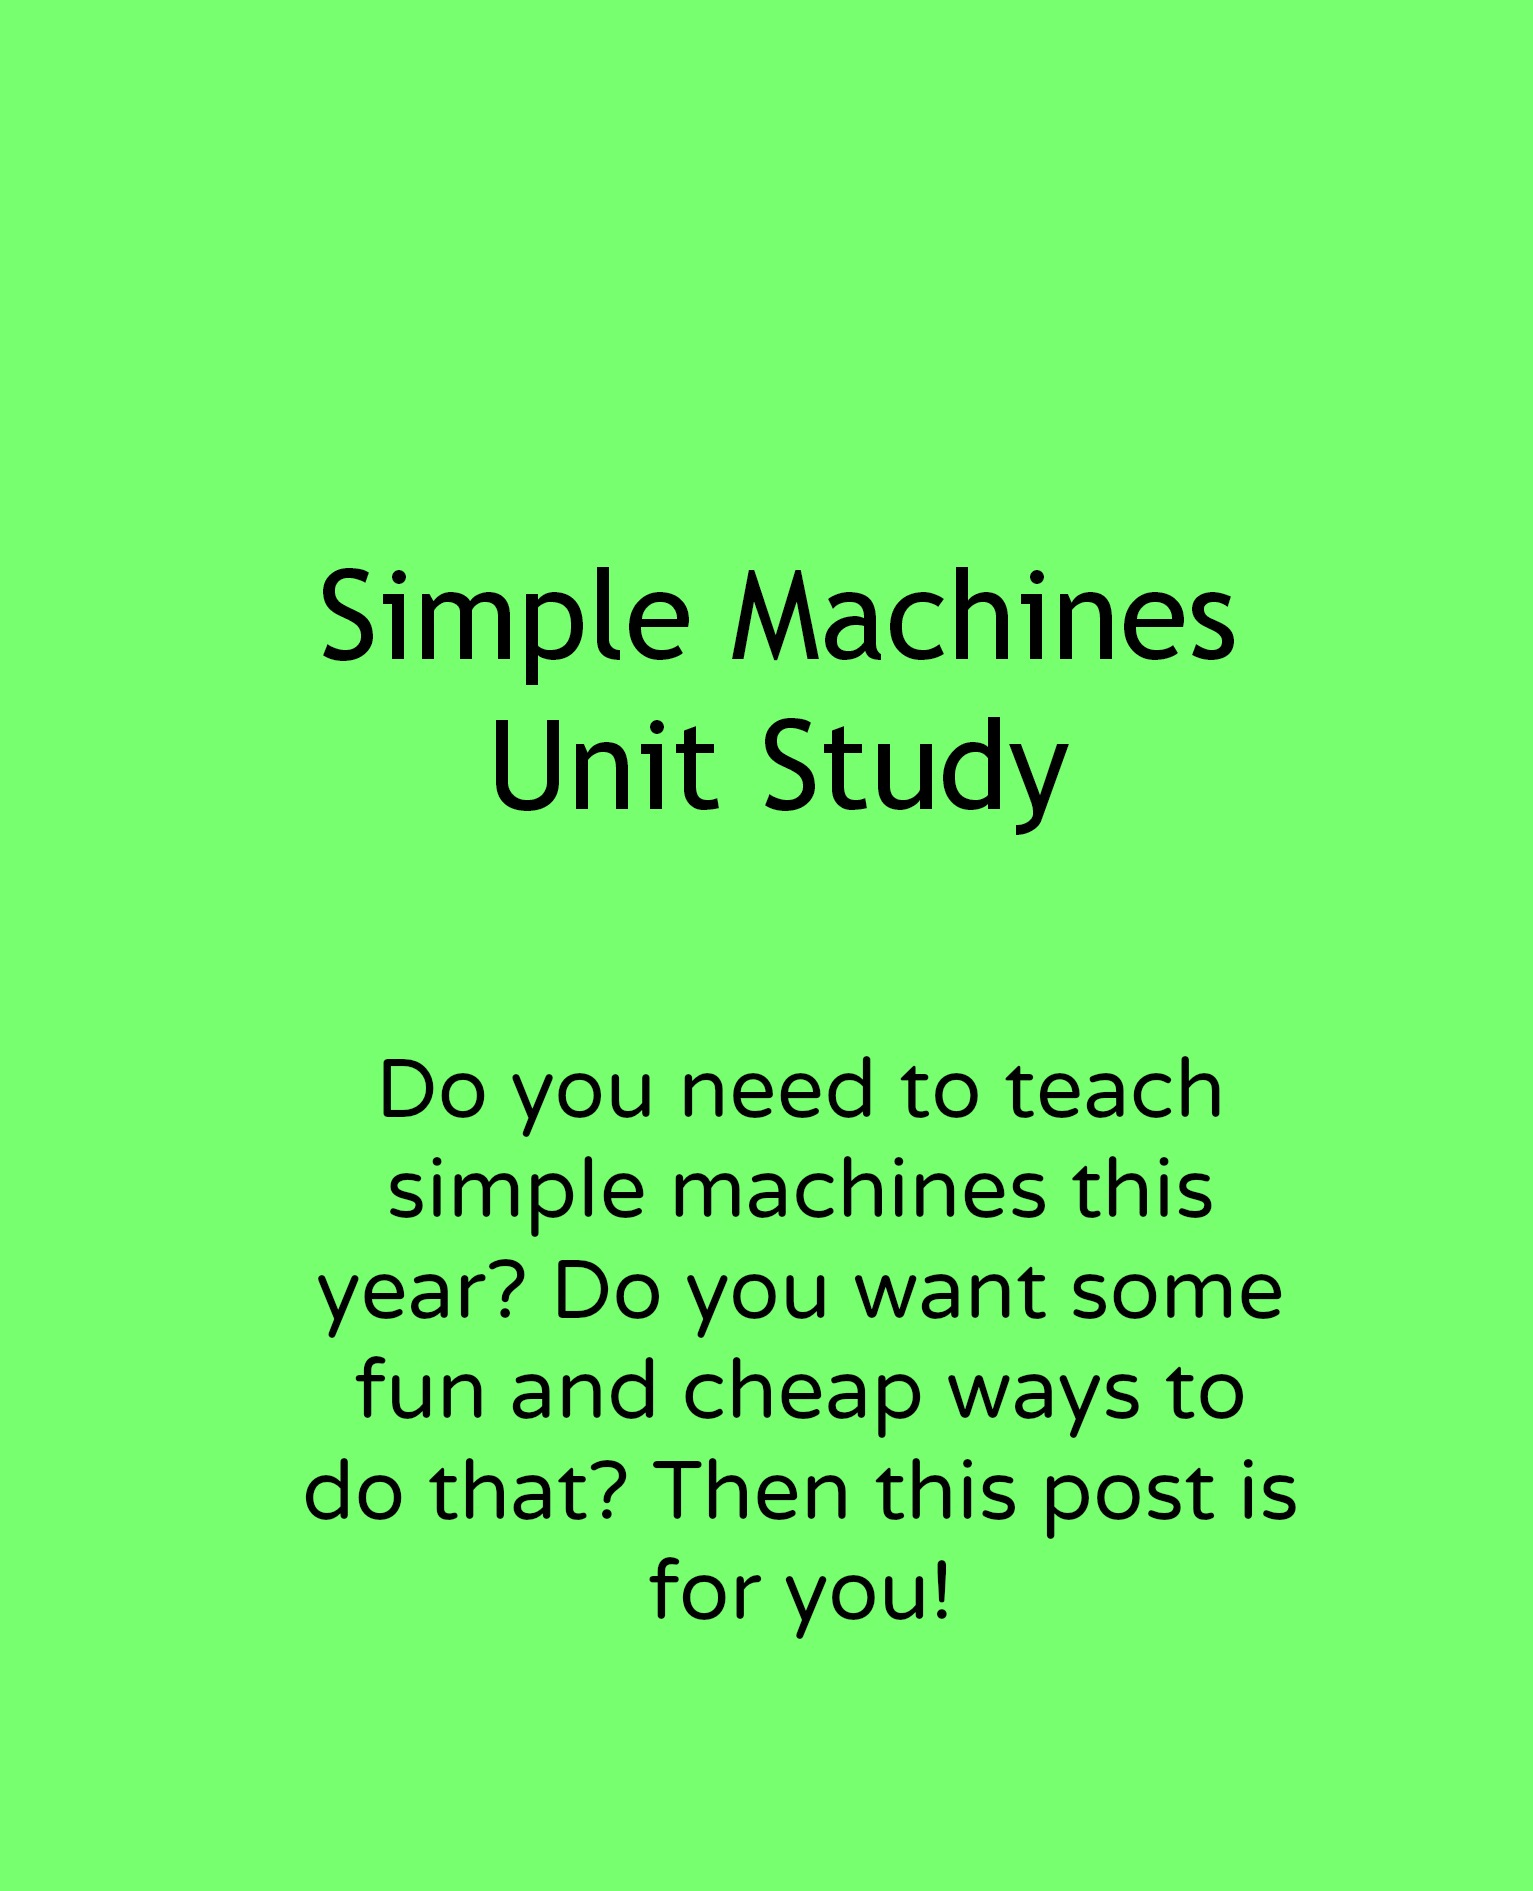 Simple machines unit study with some cheap and fun ideas for making the topic stick! Adventures in Mindful Living